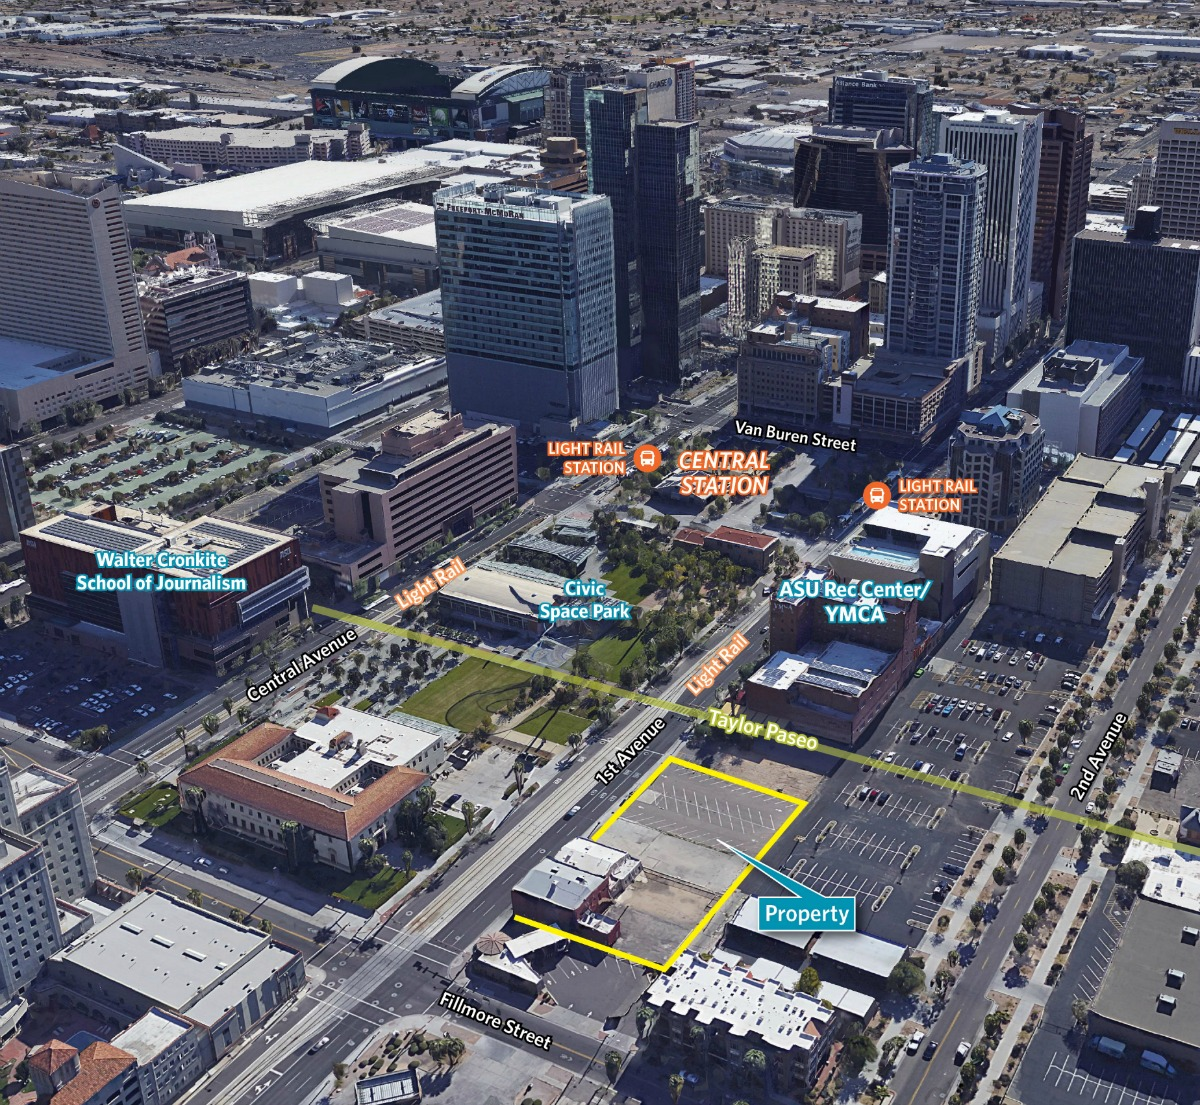 Arizona Board Of Regents Acquires Land In Downtown